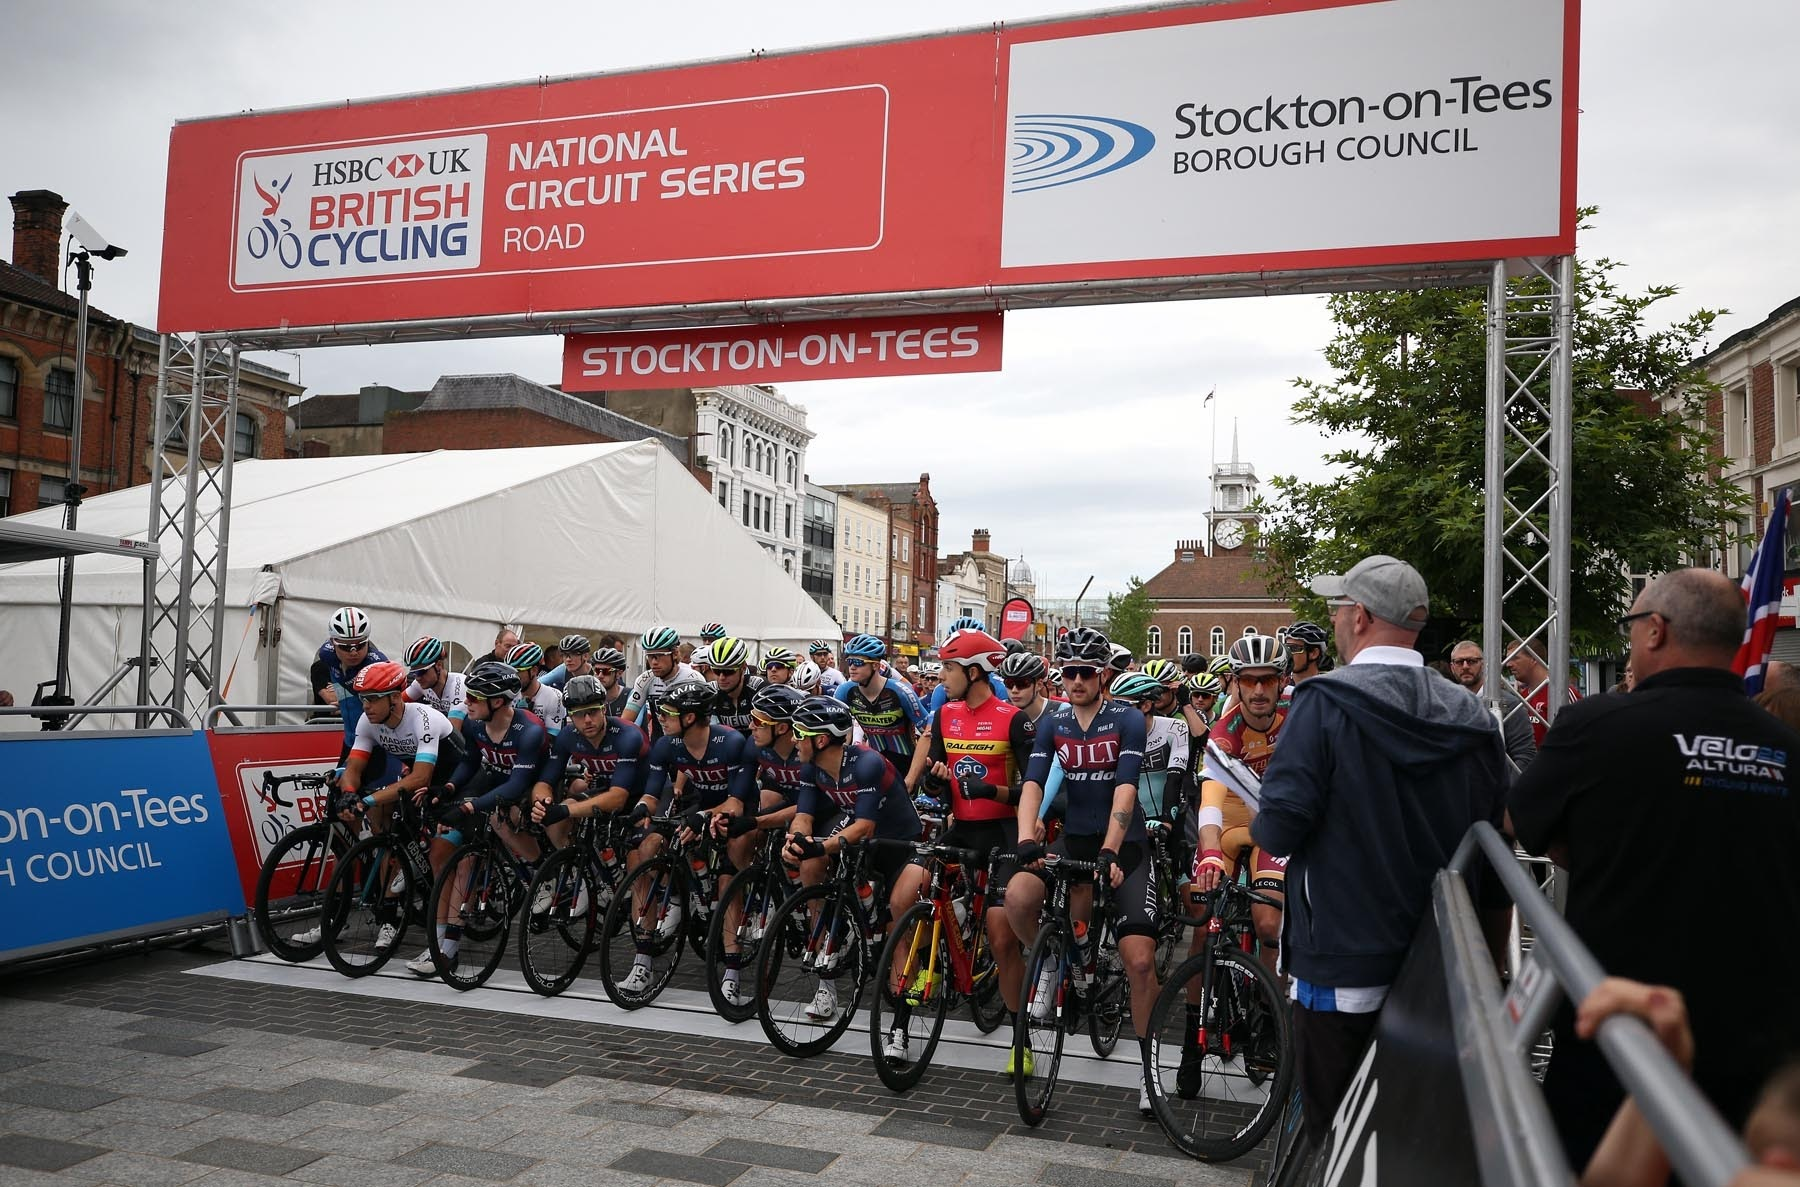 Stockton Cycling Festival. On the first day of the festival an elite race takes place around the town centre. Picture: CHRIS BOOTH.